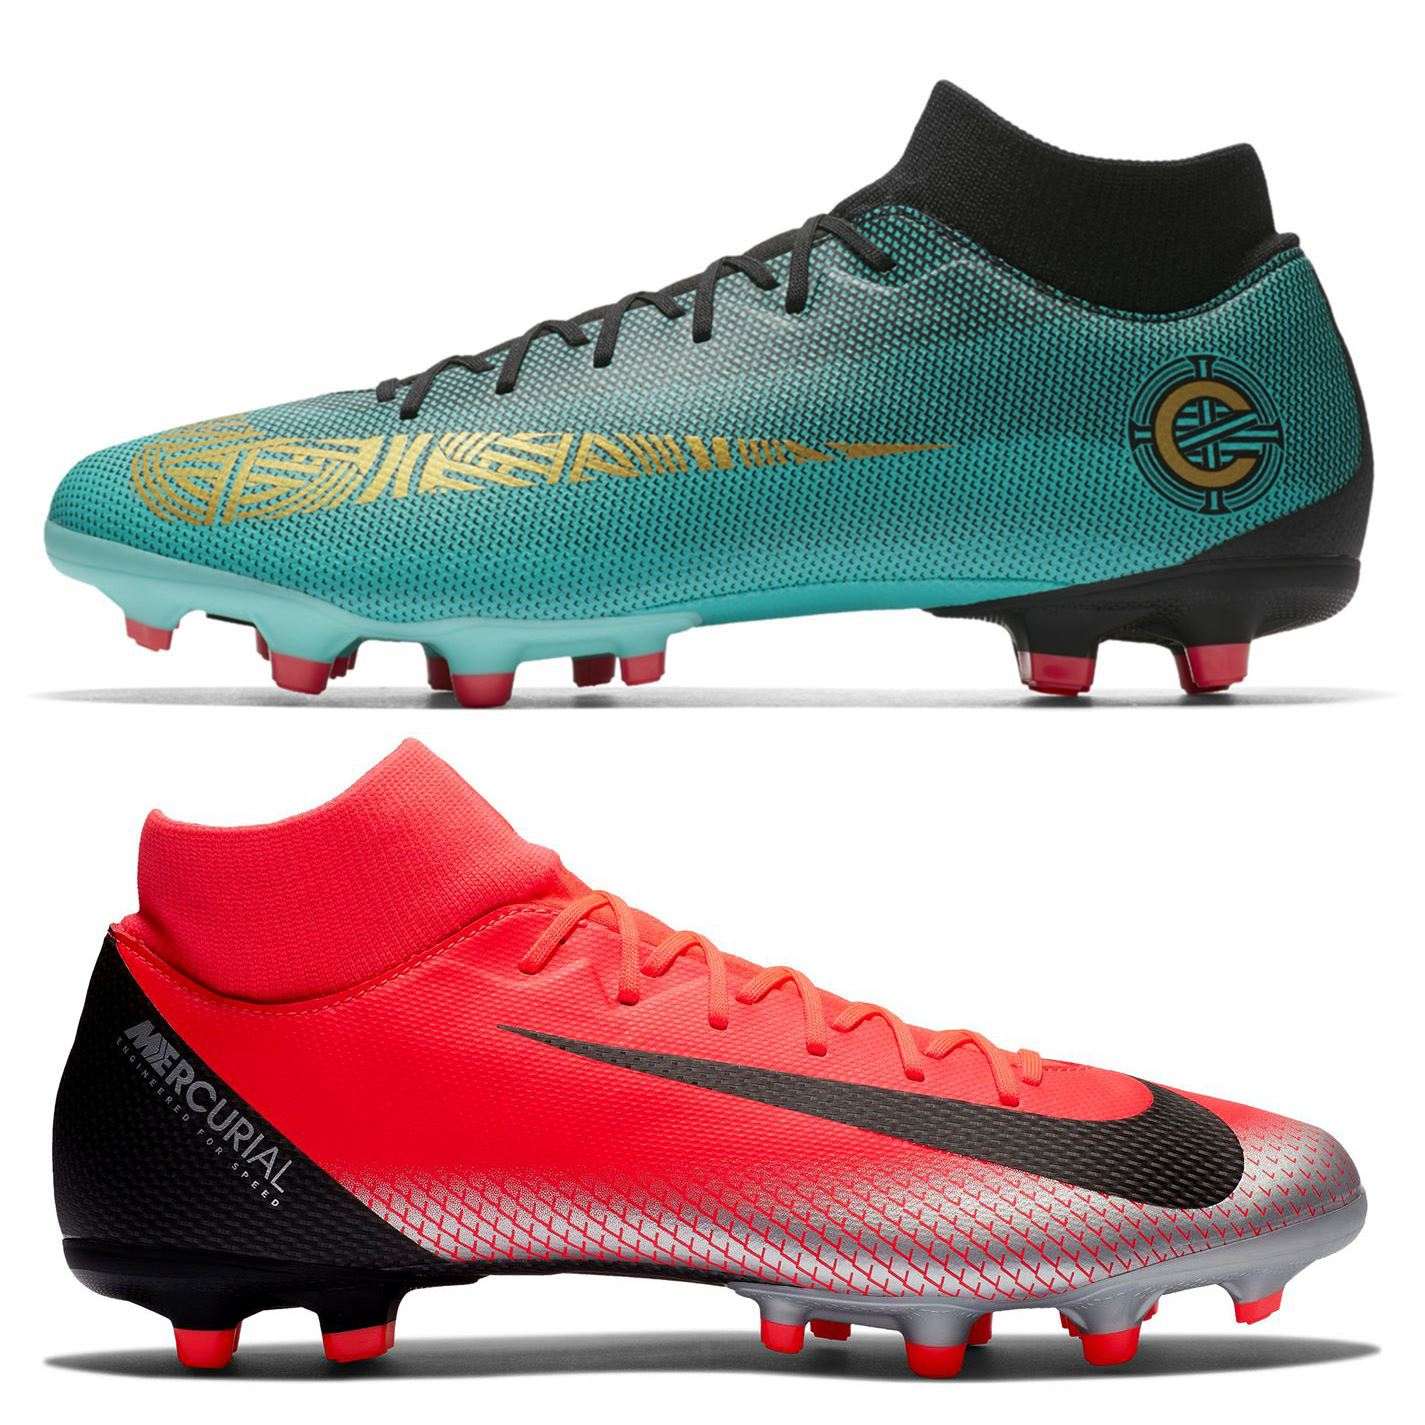 buy popular 80537 a3964 Details about Nike Mercurial Superfly Academy CR7 Firm Ground Football  Boots Mens Soccer Cleat